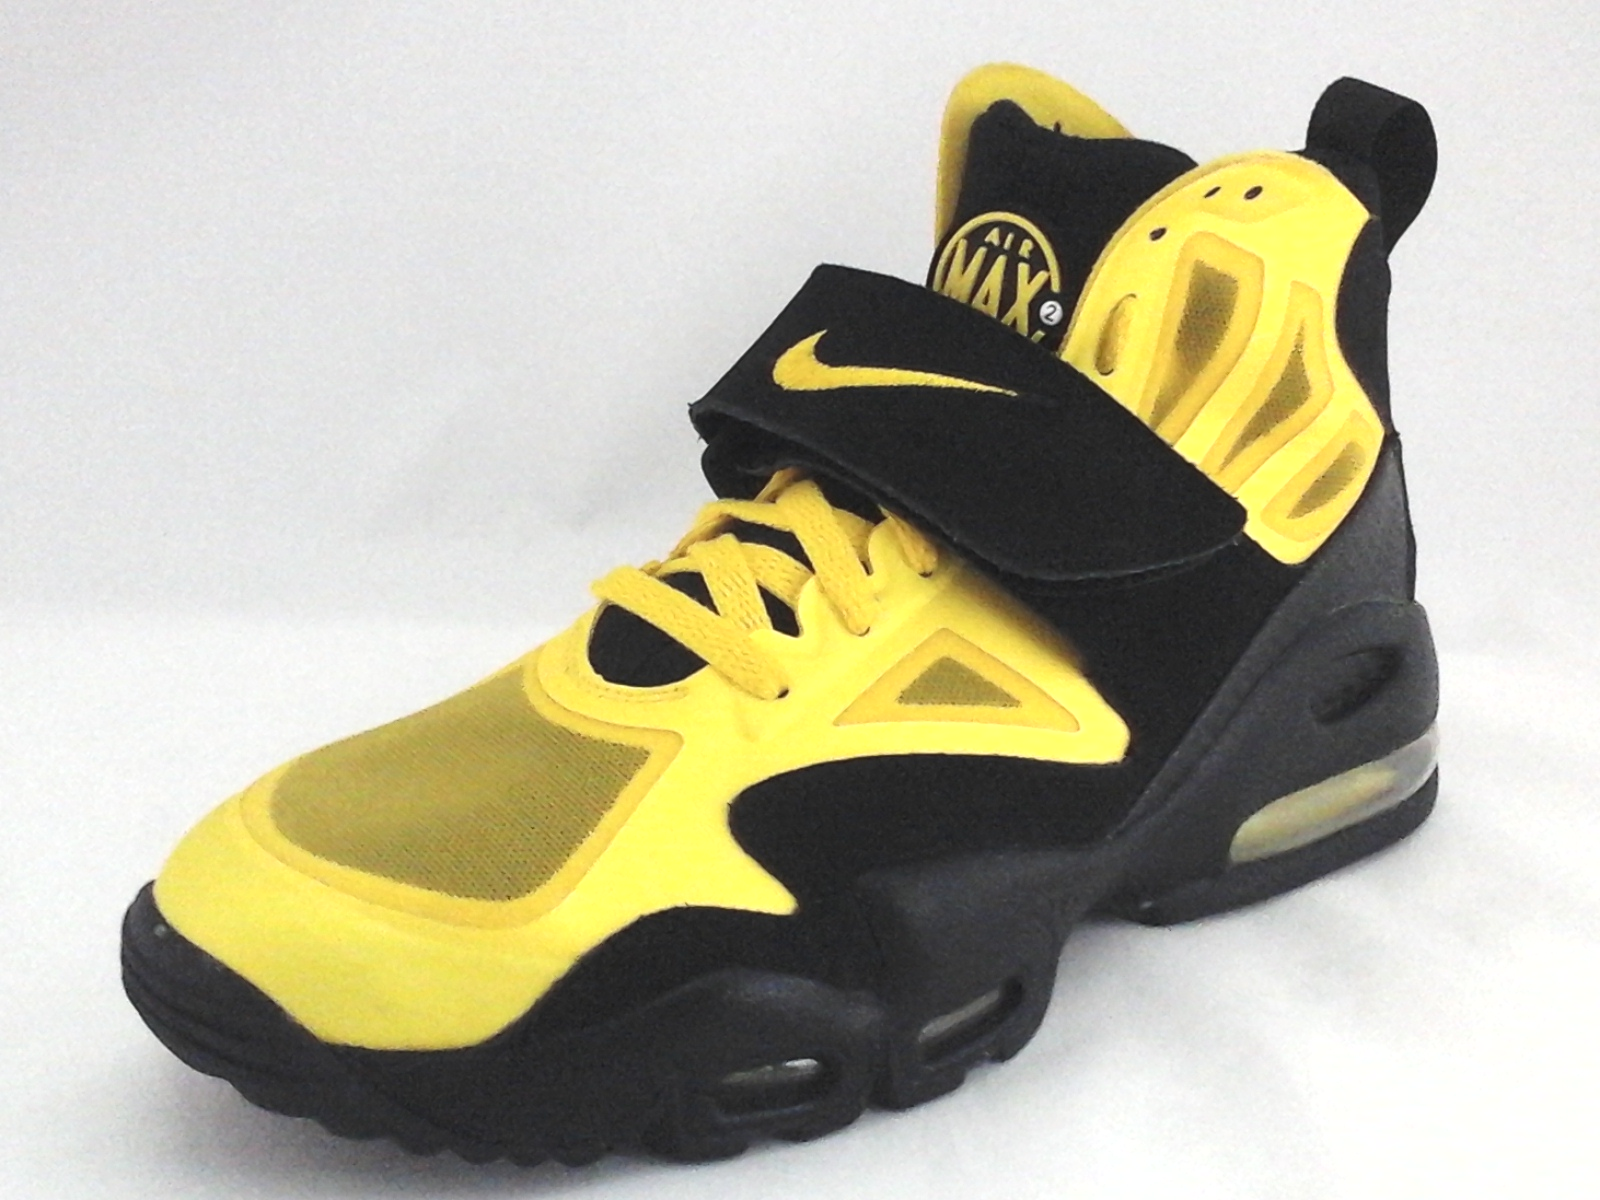 wholesale dealer 4570e 18561 NIKE AIR MAX Shoes Yellow Black 525224 High Top Sneakers Men s US 9.5 EU 43  RARE